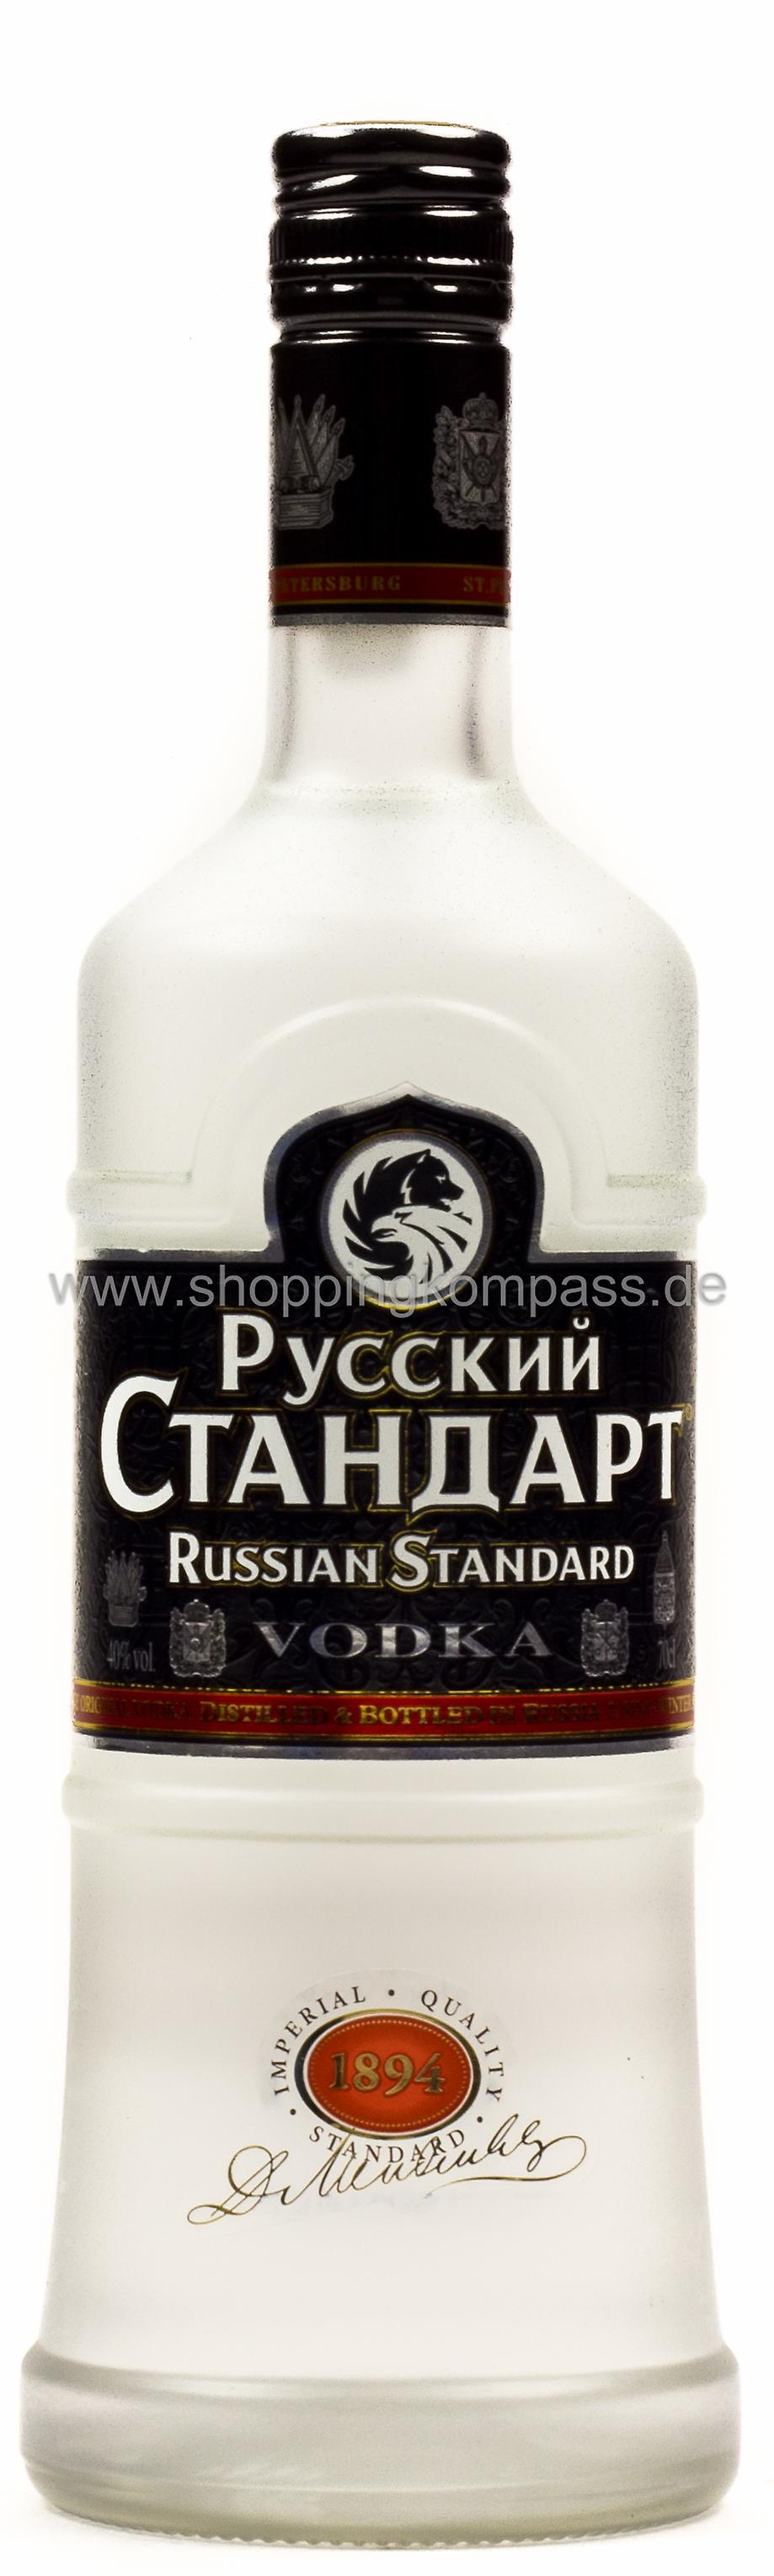 Russian Standard Vodka 0,7 l Glas